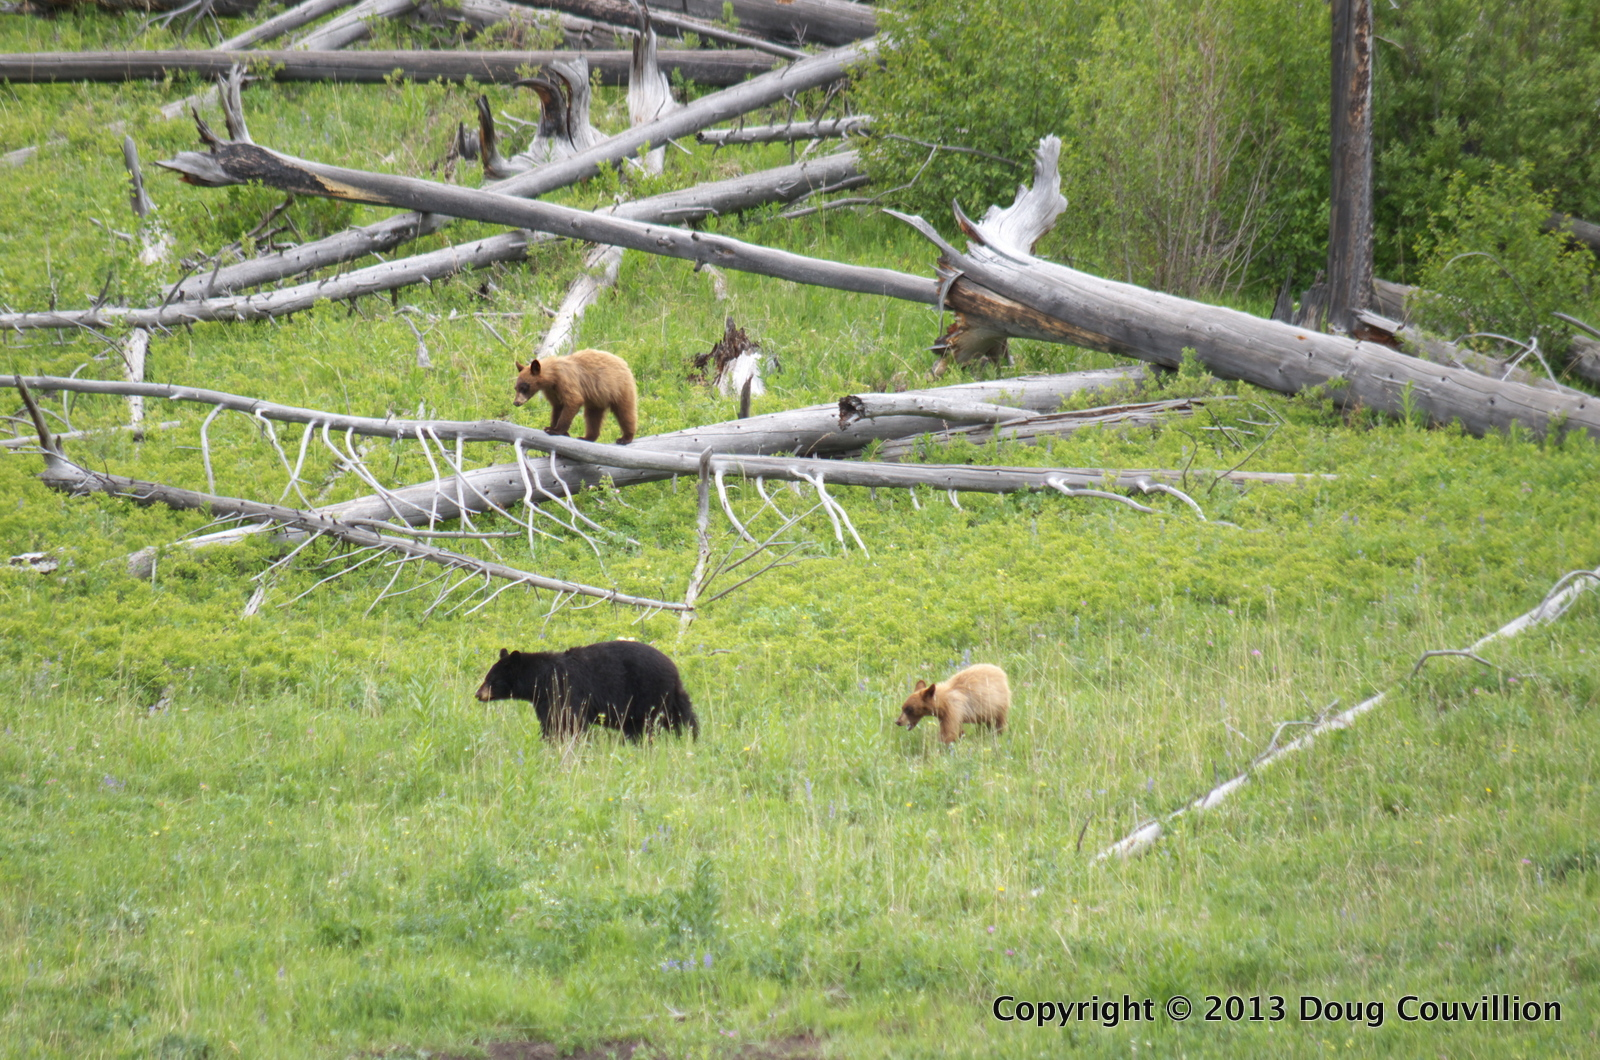 photograph of a black bear with two cubs in Yellowstone National Park